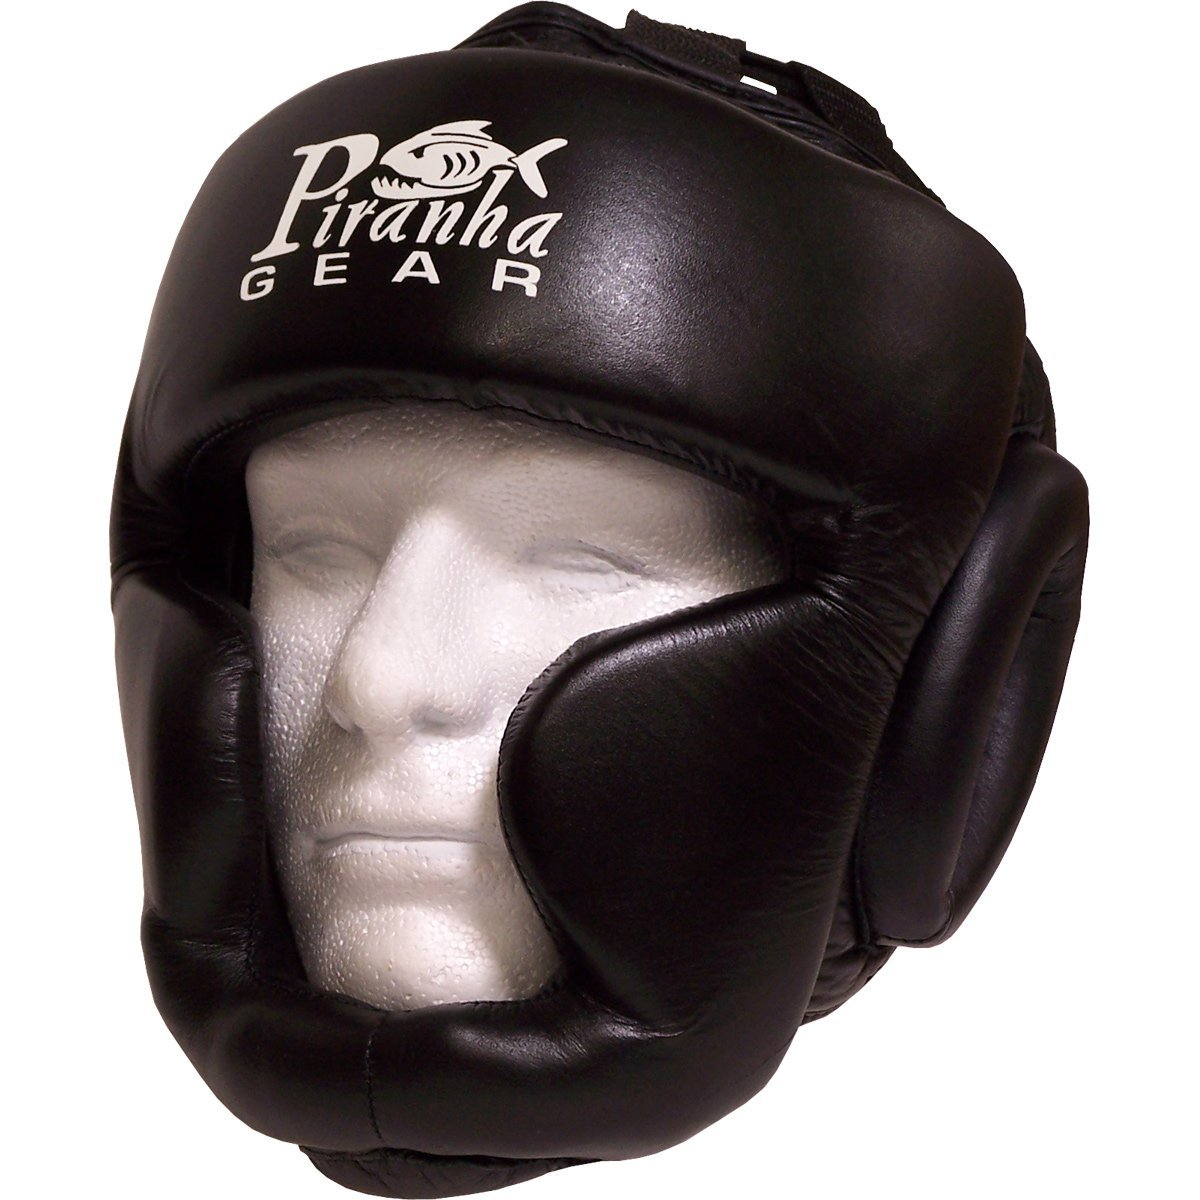 Piranha Gear Leather head guard w/ chin and cheek padding